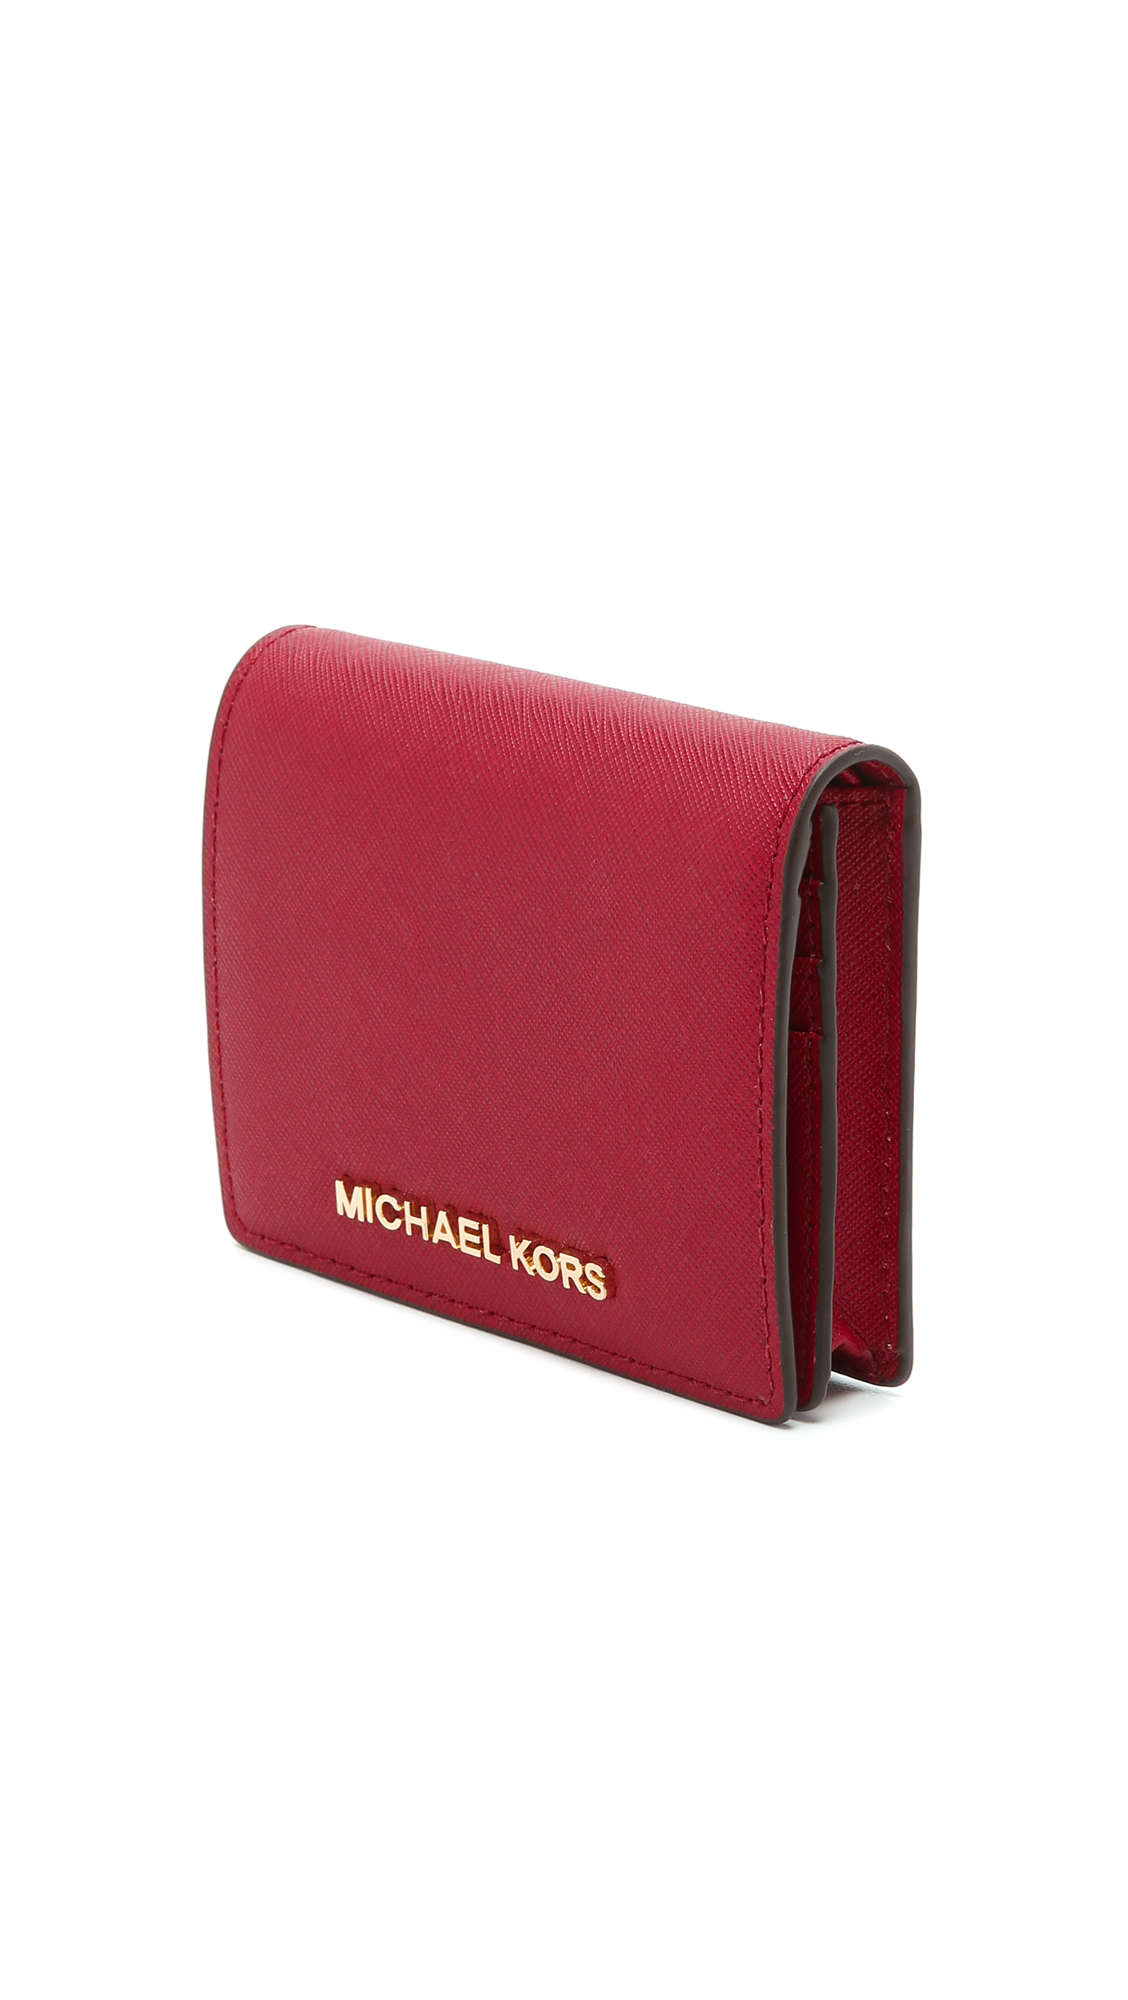 ab6018c3b8aa MICHAEL Michael Kors Jet Set Bifold Wallet - Cherry in Red - Lyst